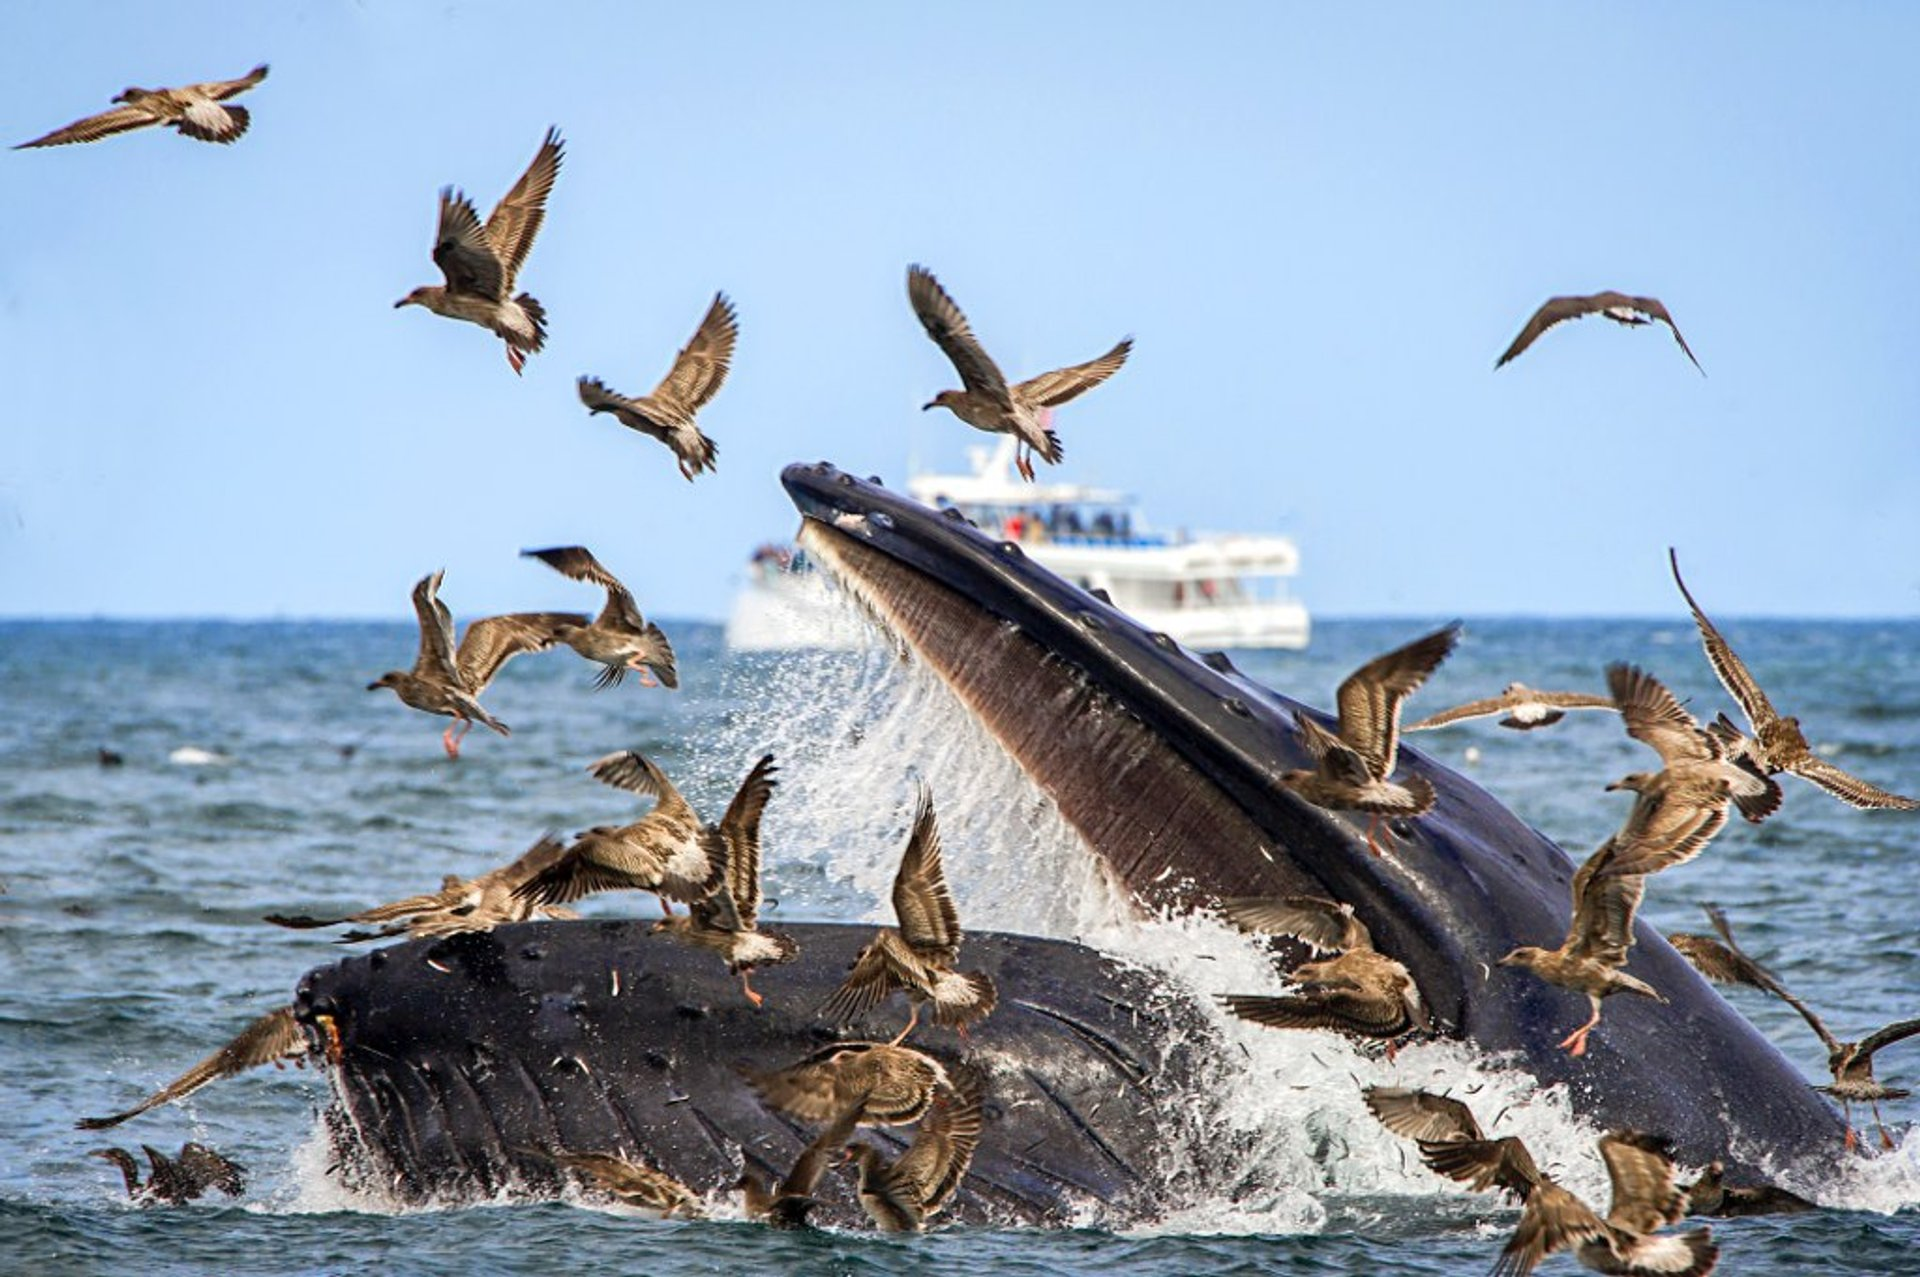 Whale Watching in California 2020 - Best Time